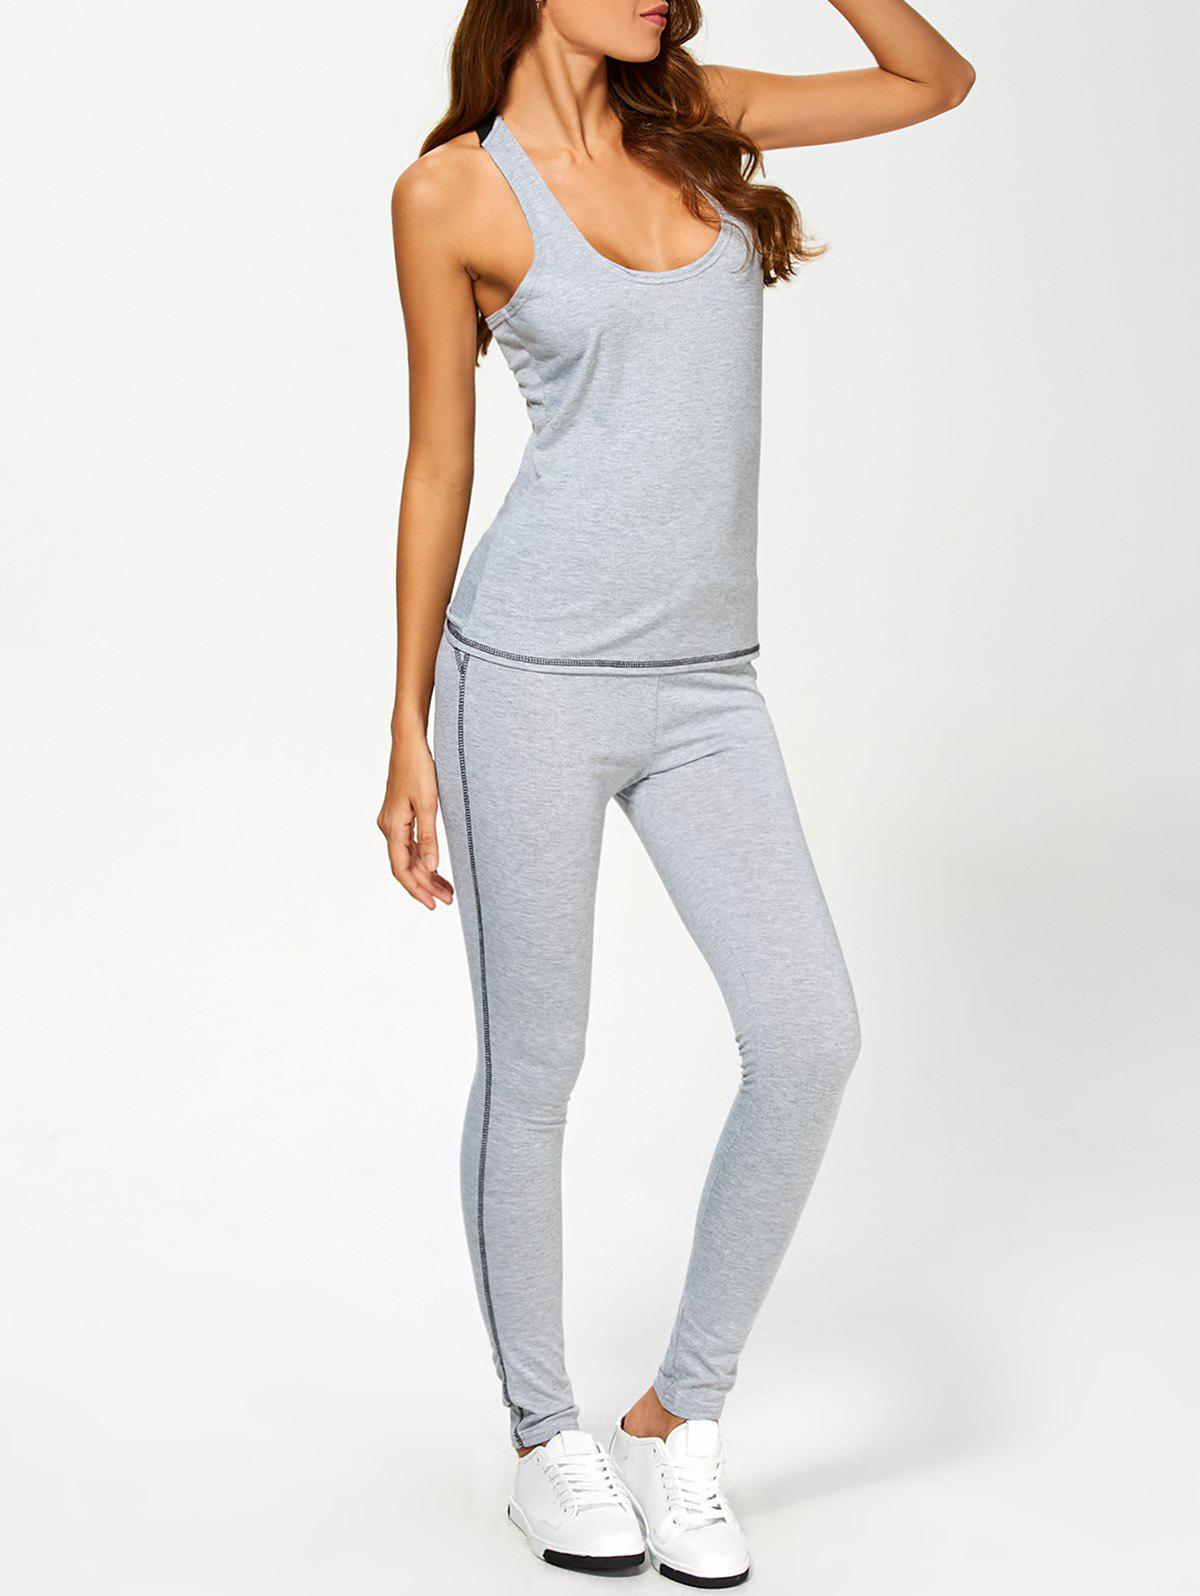 U Neck Color Block Tank Top and Sports Skinny Leggings - GRAY XL